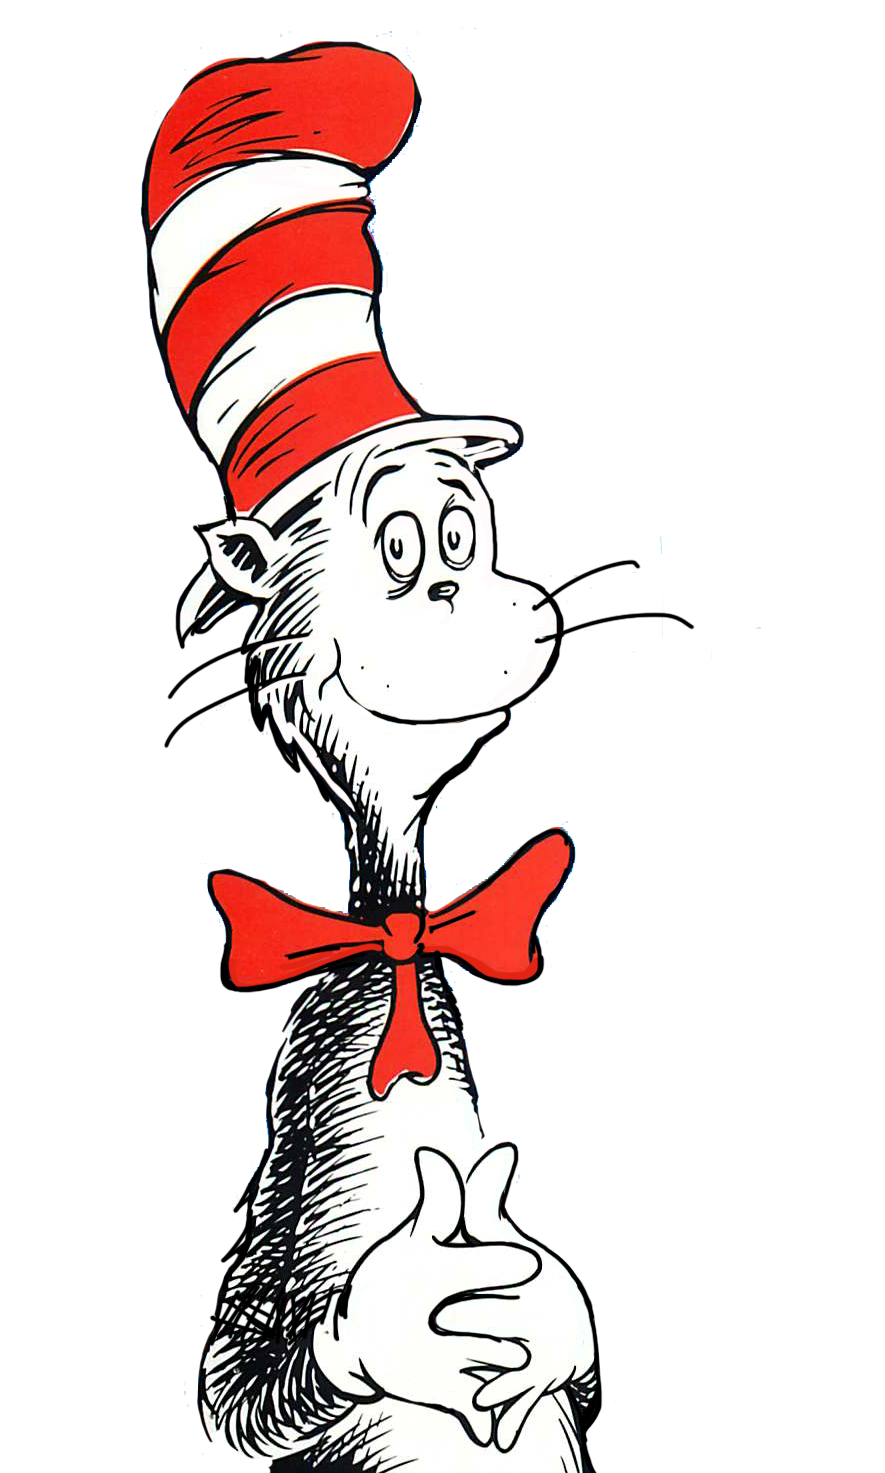 photograph about Free Printable Dr Seuss Clip Art referred to as Excellent Dr Seuss Clip Artwork Cost-free #9380 -